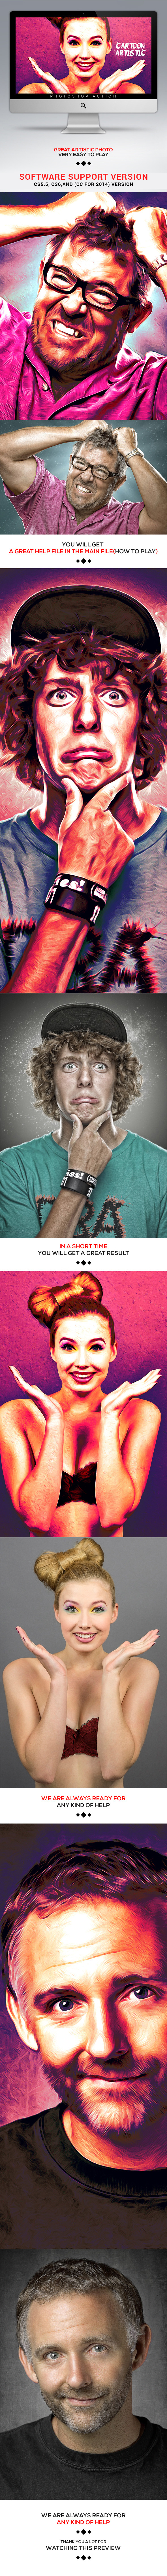 Cartoon Artistic - Photo Effects Actions